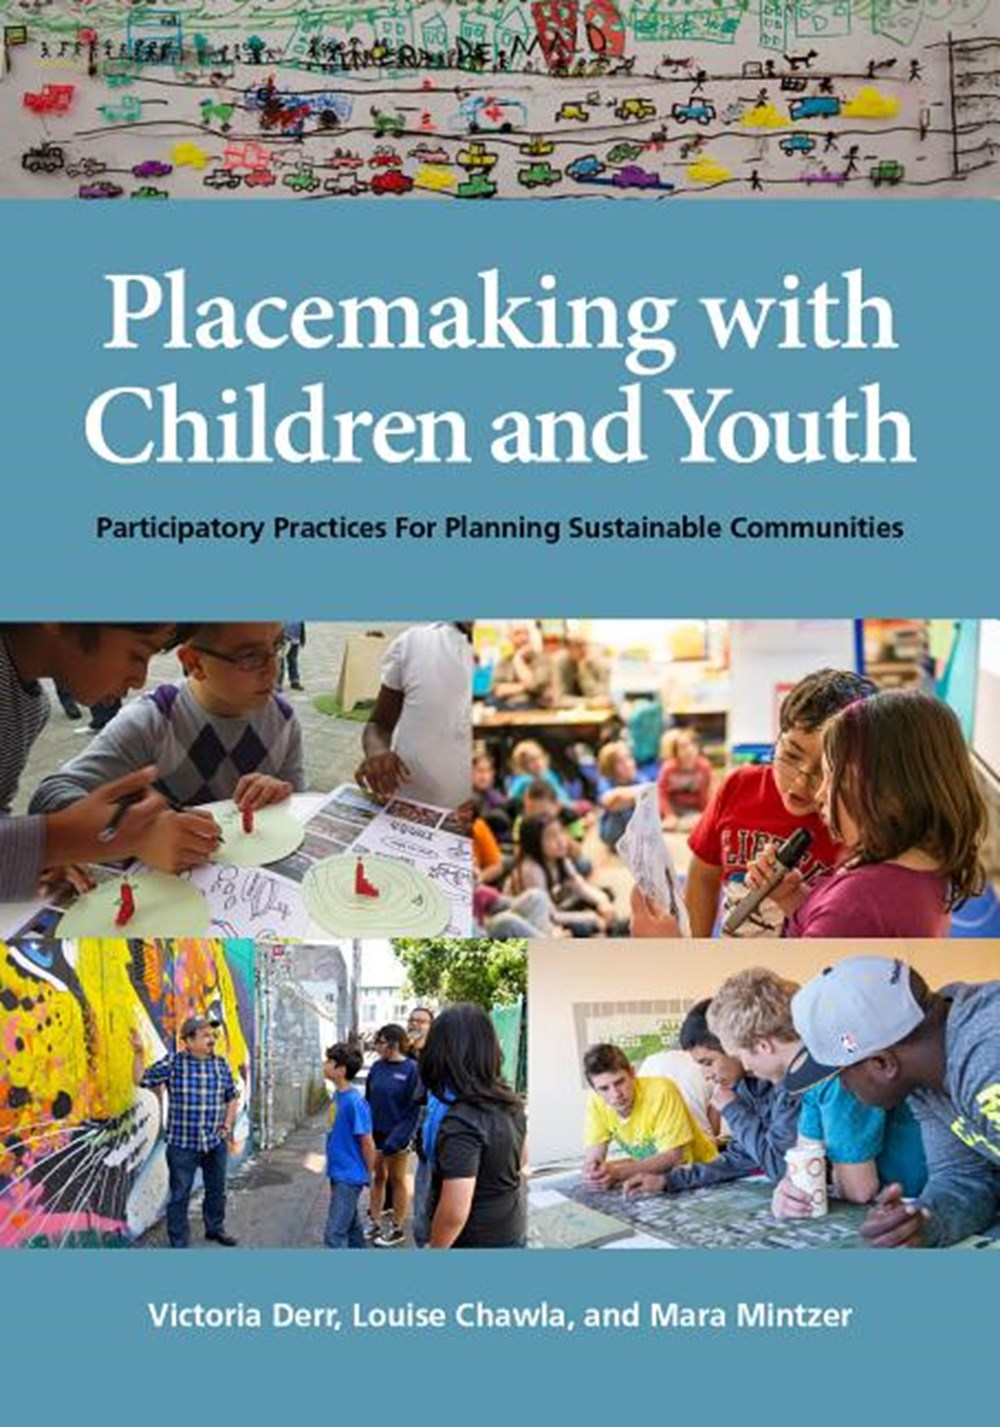 Placemaking with Children and Youth Participatory Practices for Planning Sustainable Communities